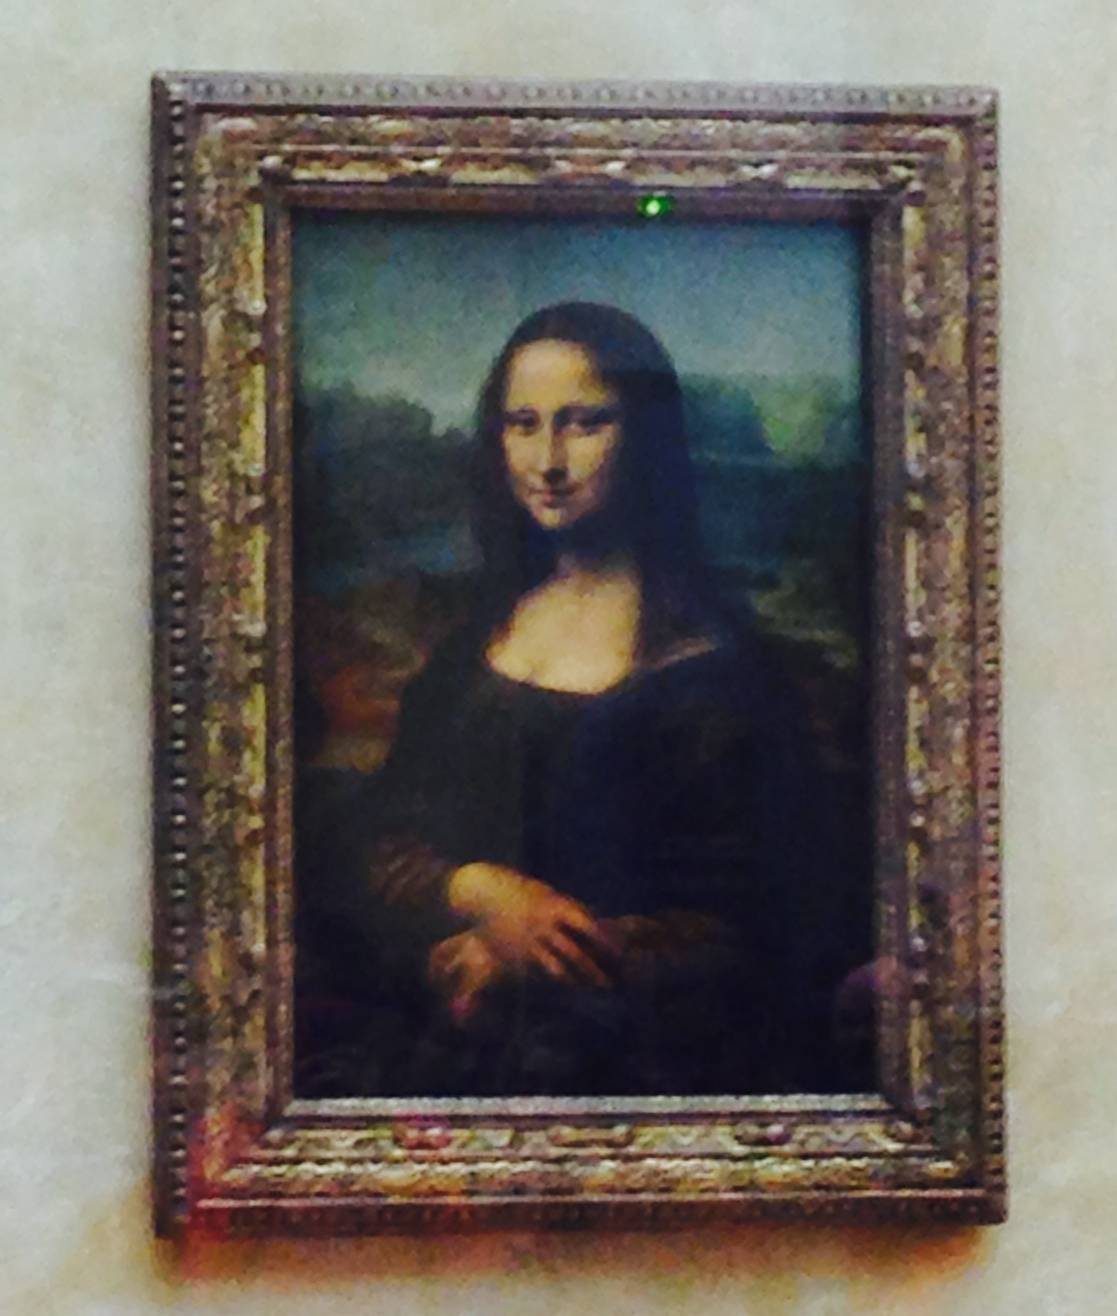 Mona Lisa, The Louvre, Paris